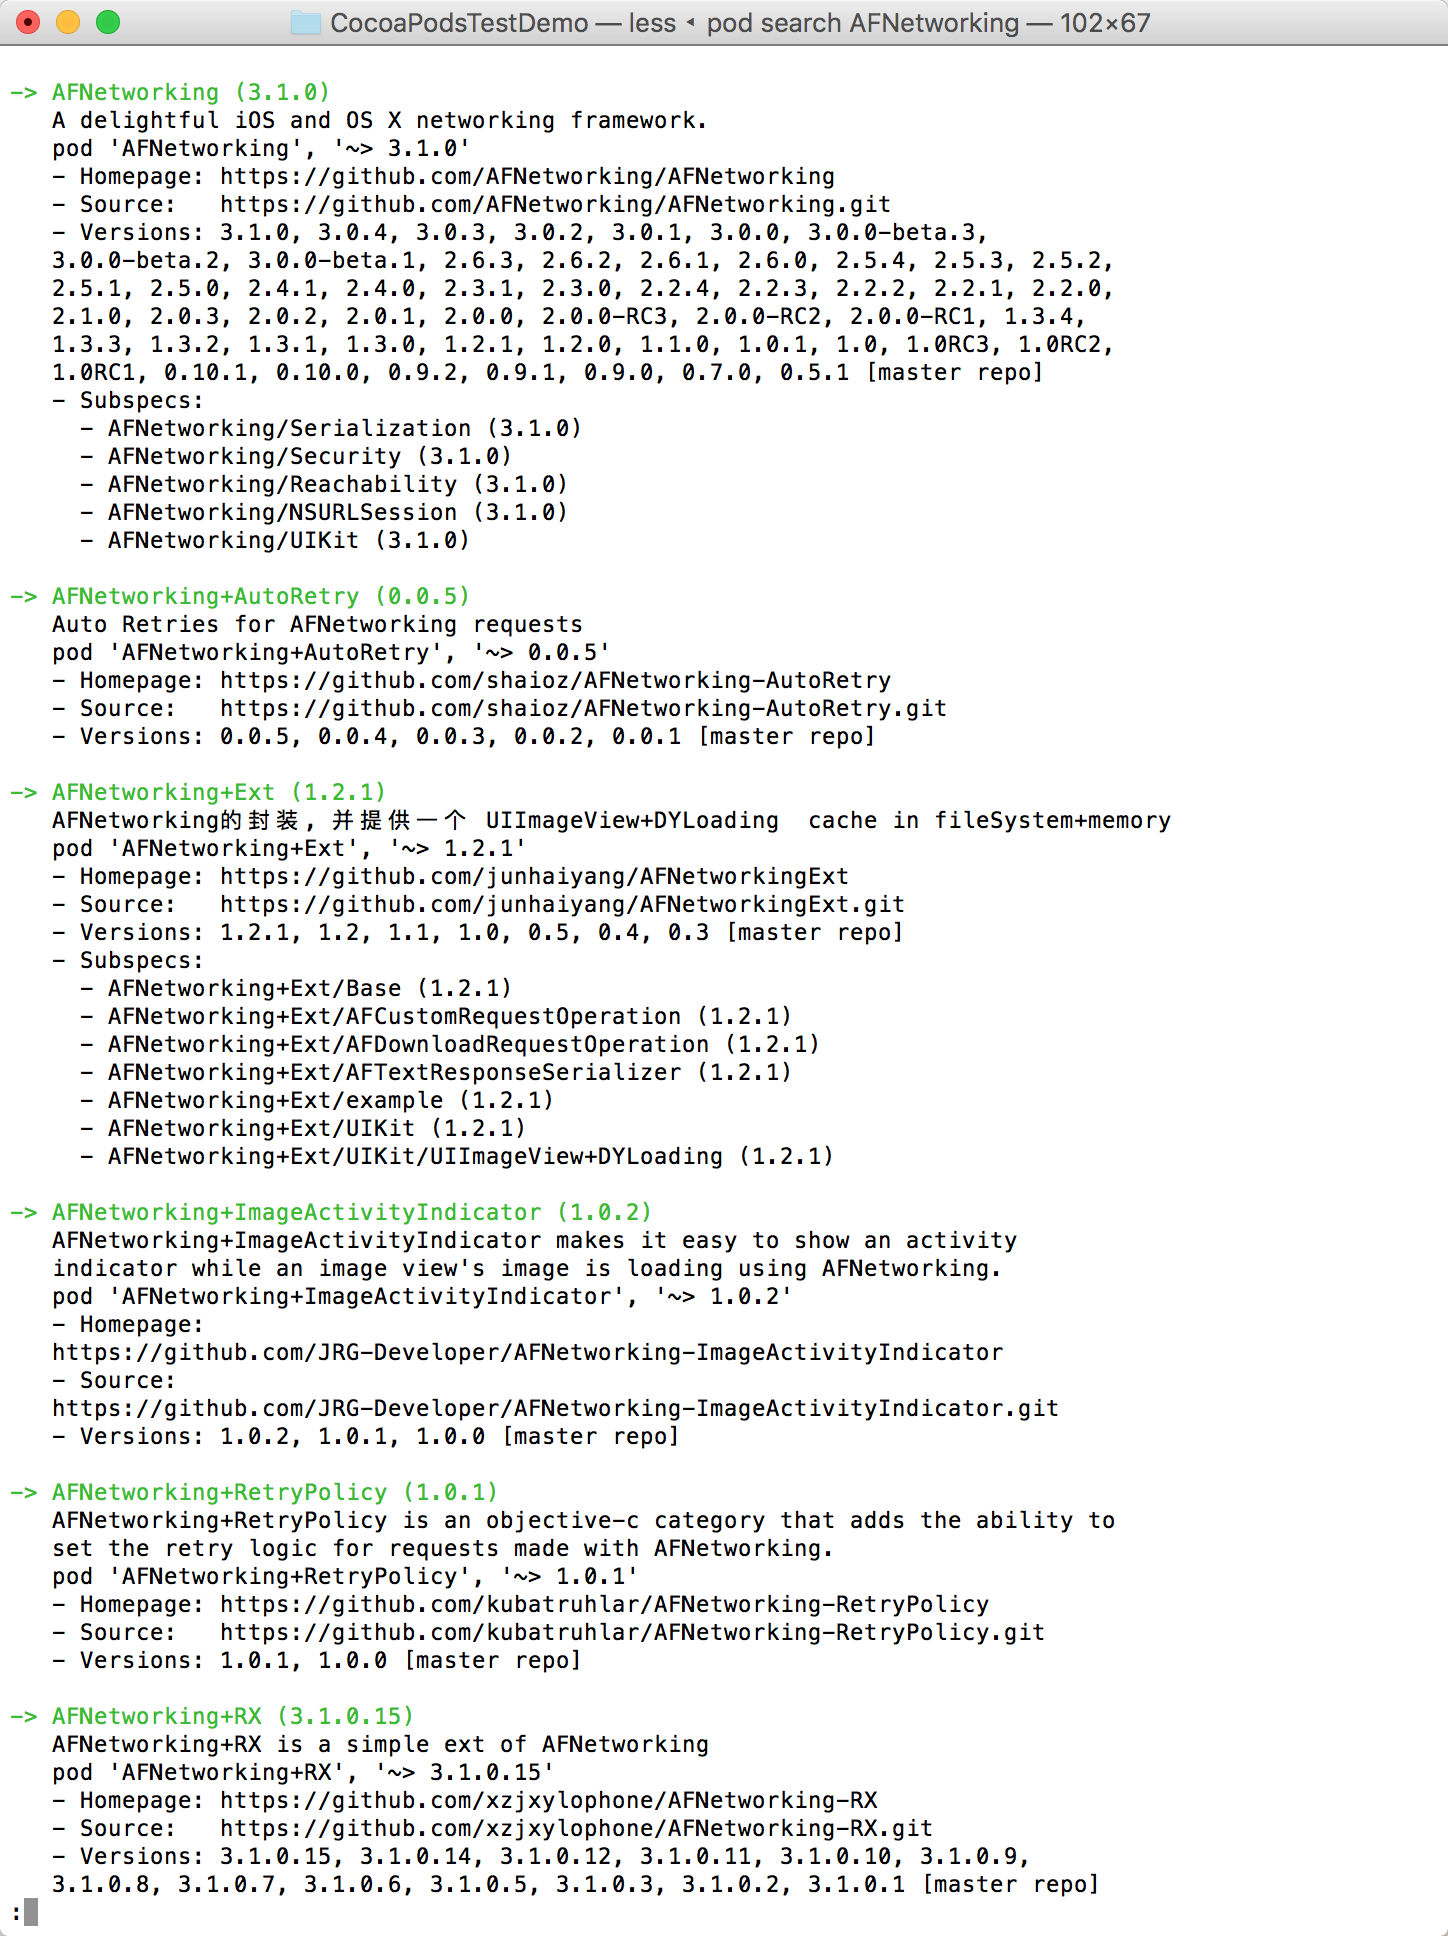 iOS Tools] rvm, Ruby Environment and CocoaPods Installation and Use